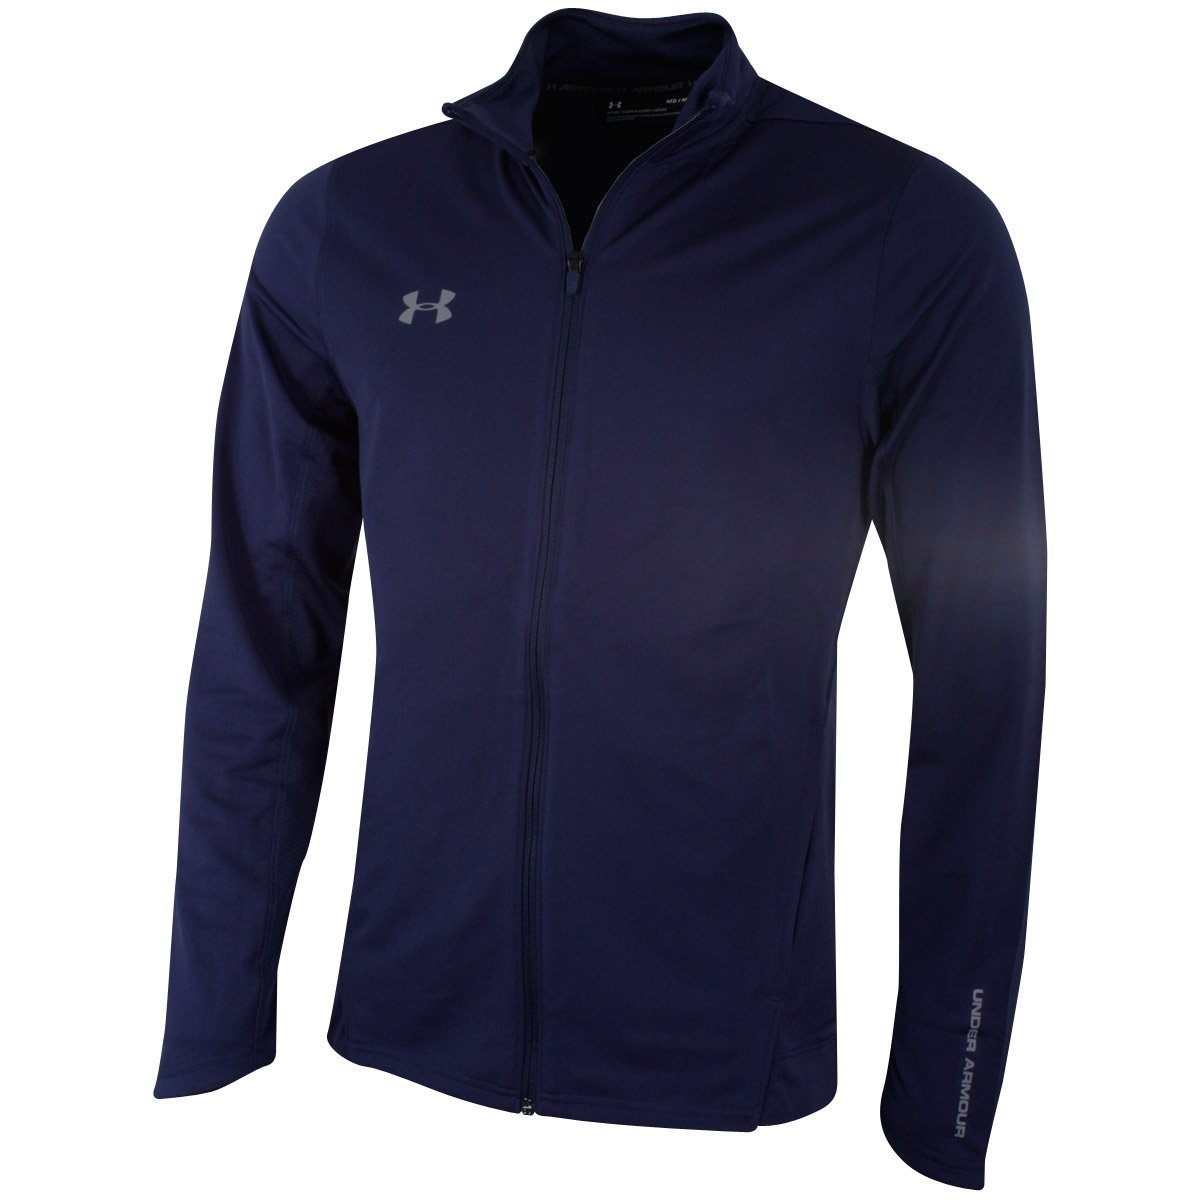 Challenger Ii Knit Warm-Up Men's Training Suit Under Armour 1299934